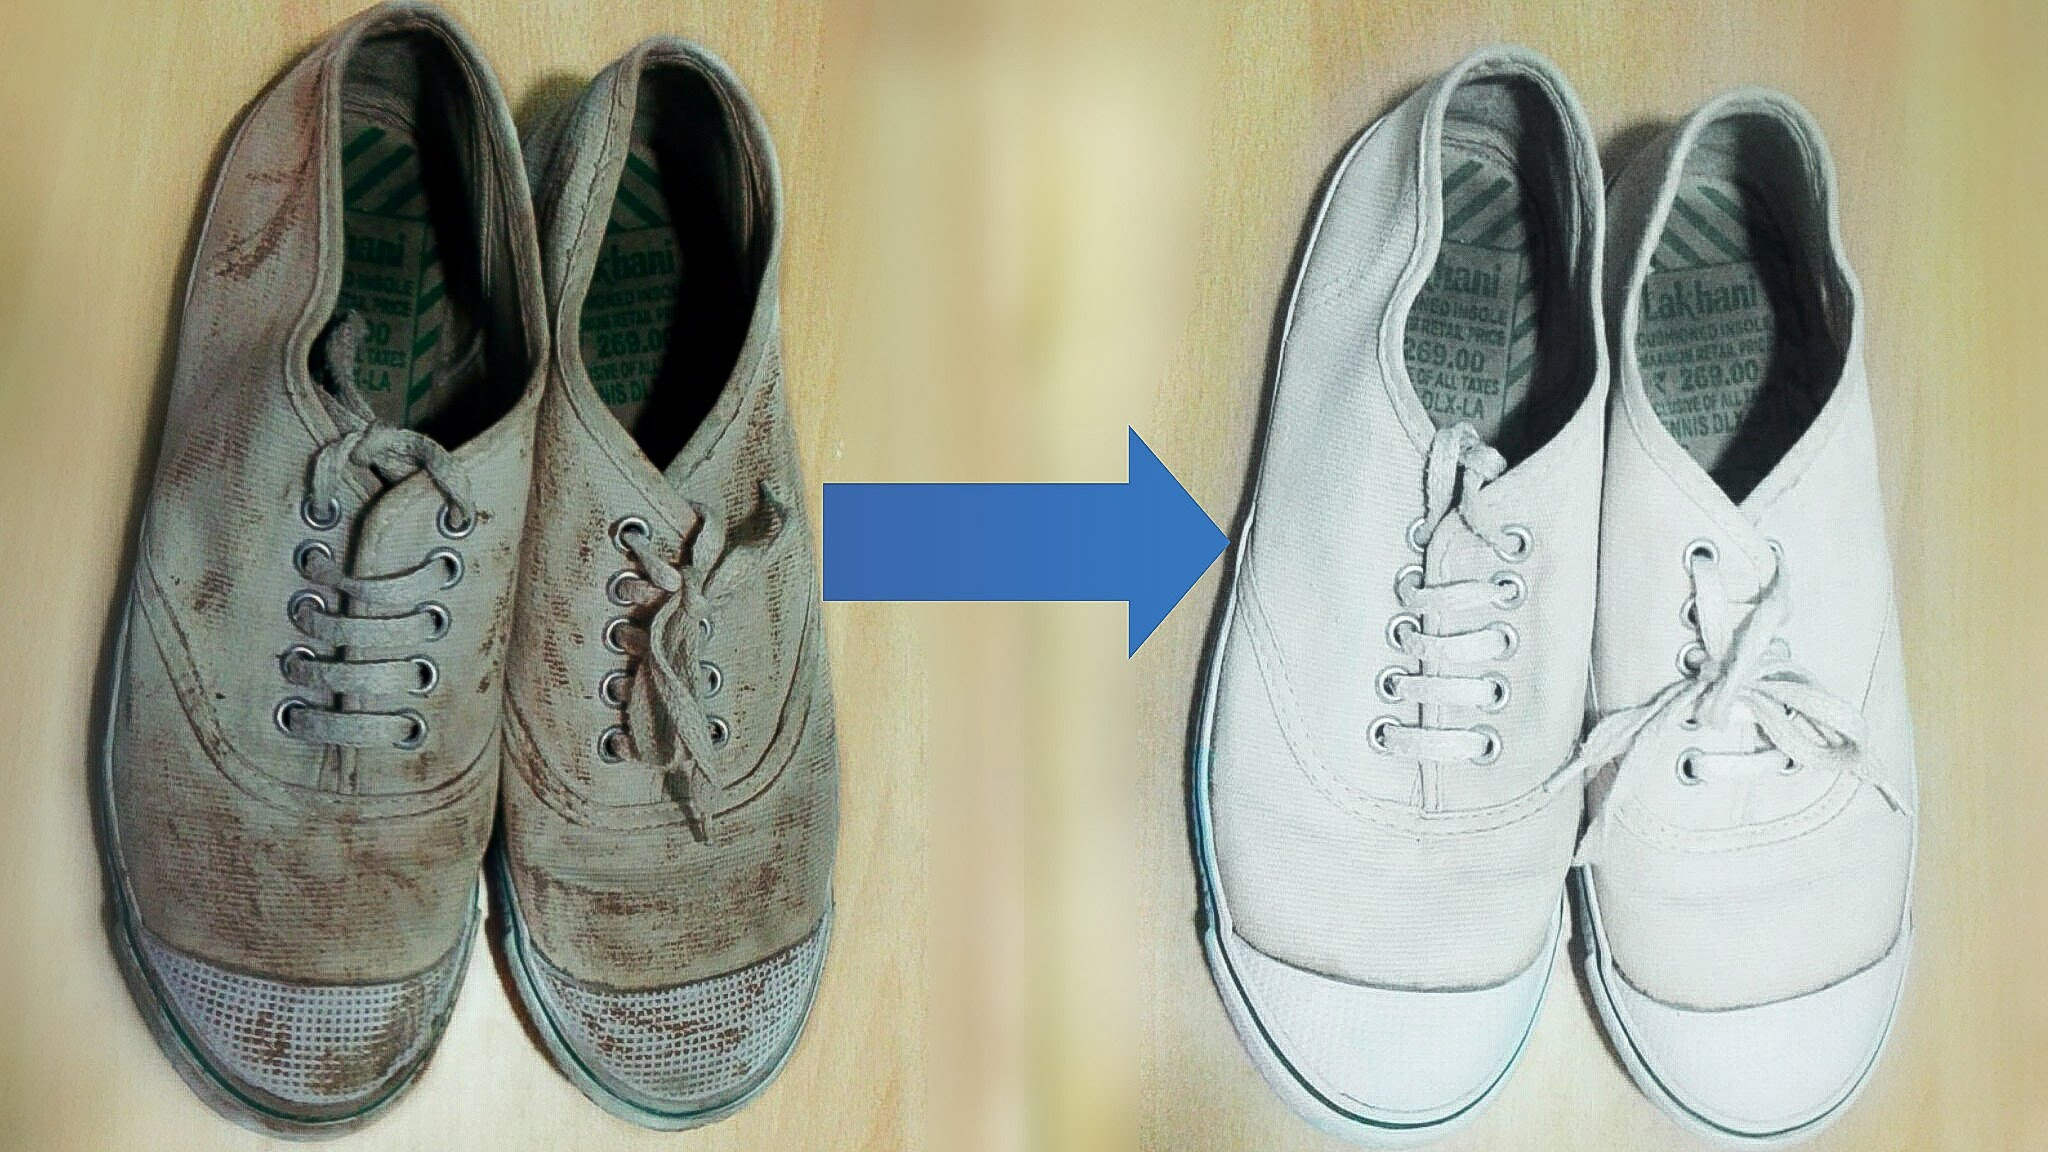 How To Clean White Fabric Shoes